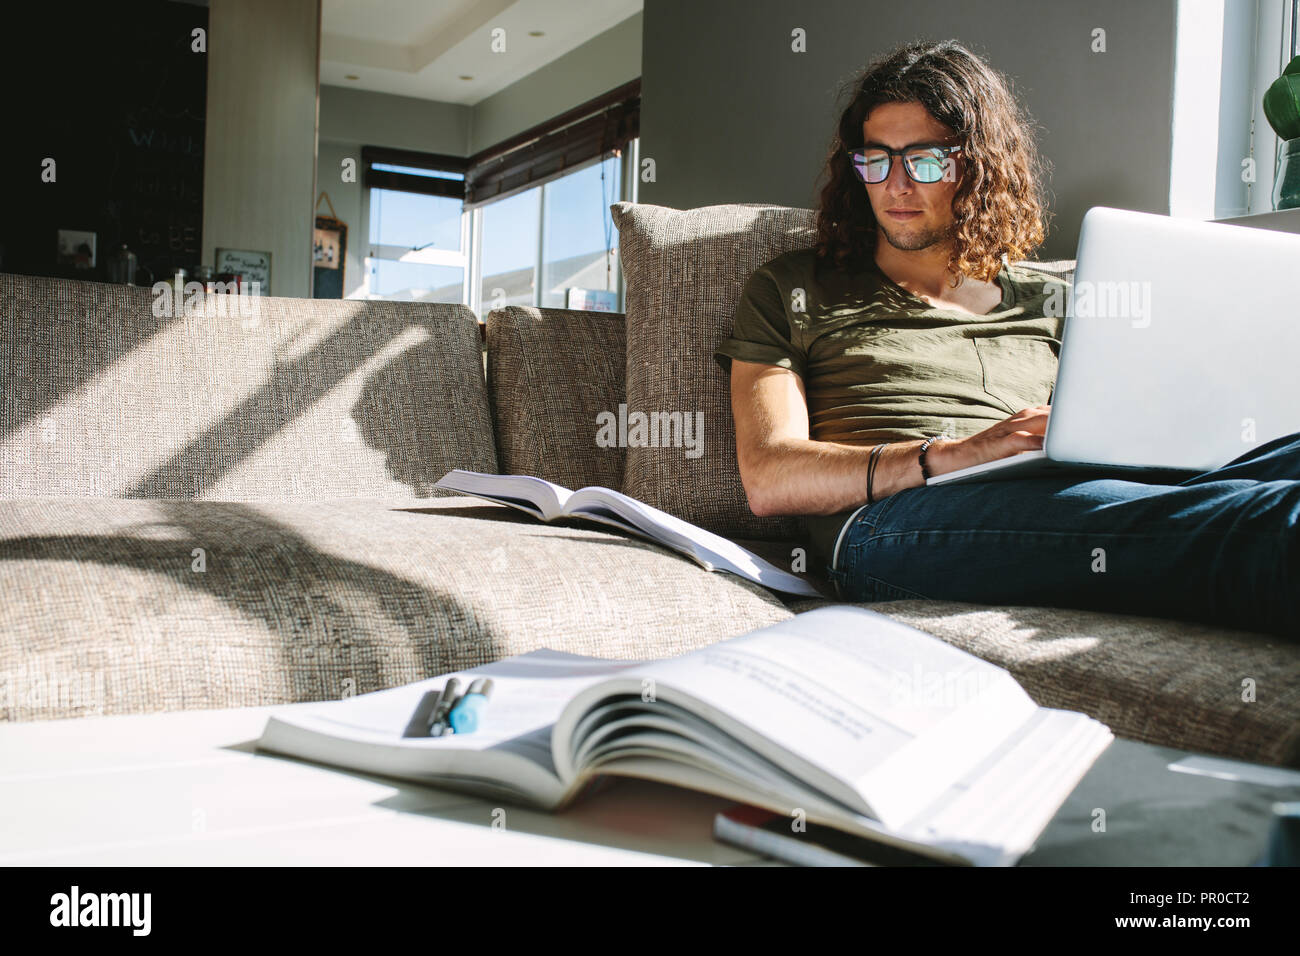 Young man studying for exams sitting on couch at home with sunlight coming from window. Student studying for exam on laptop with books in front. - Stock Image